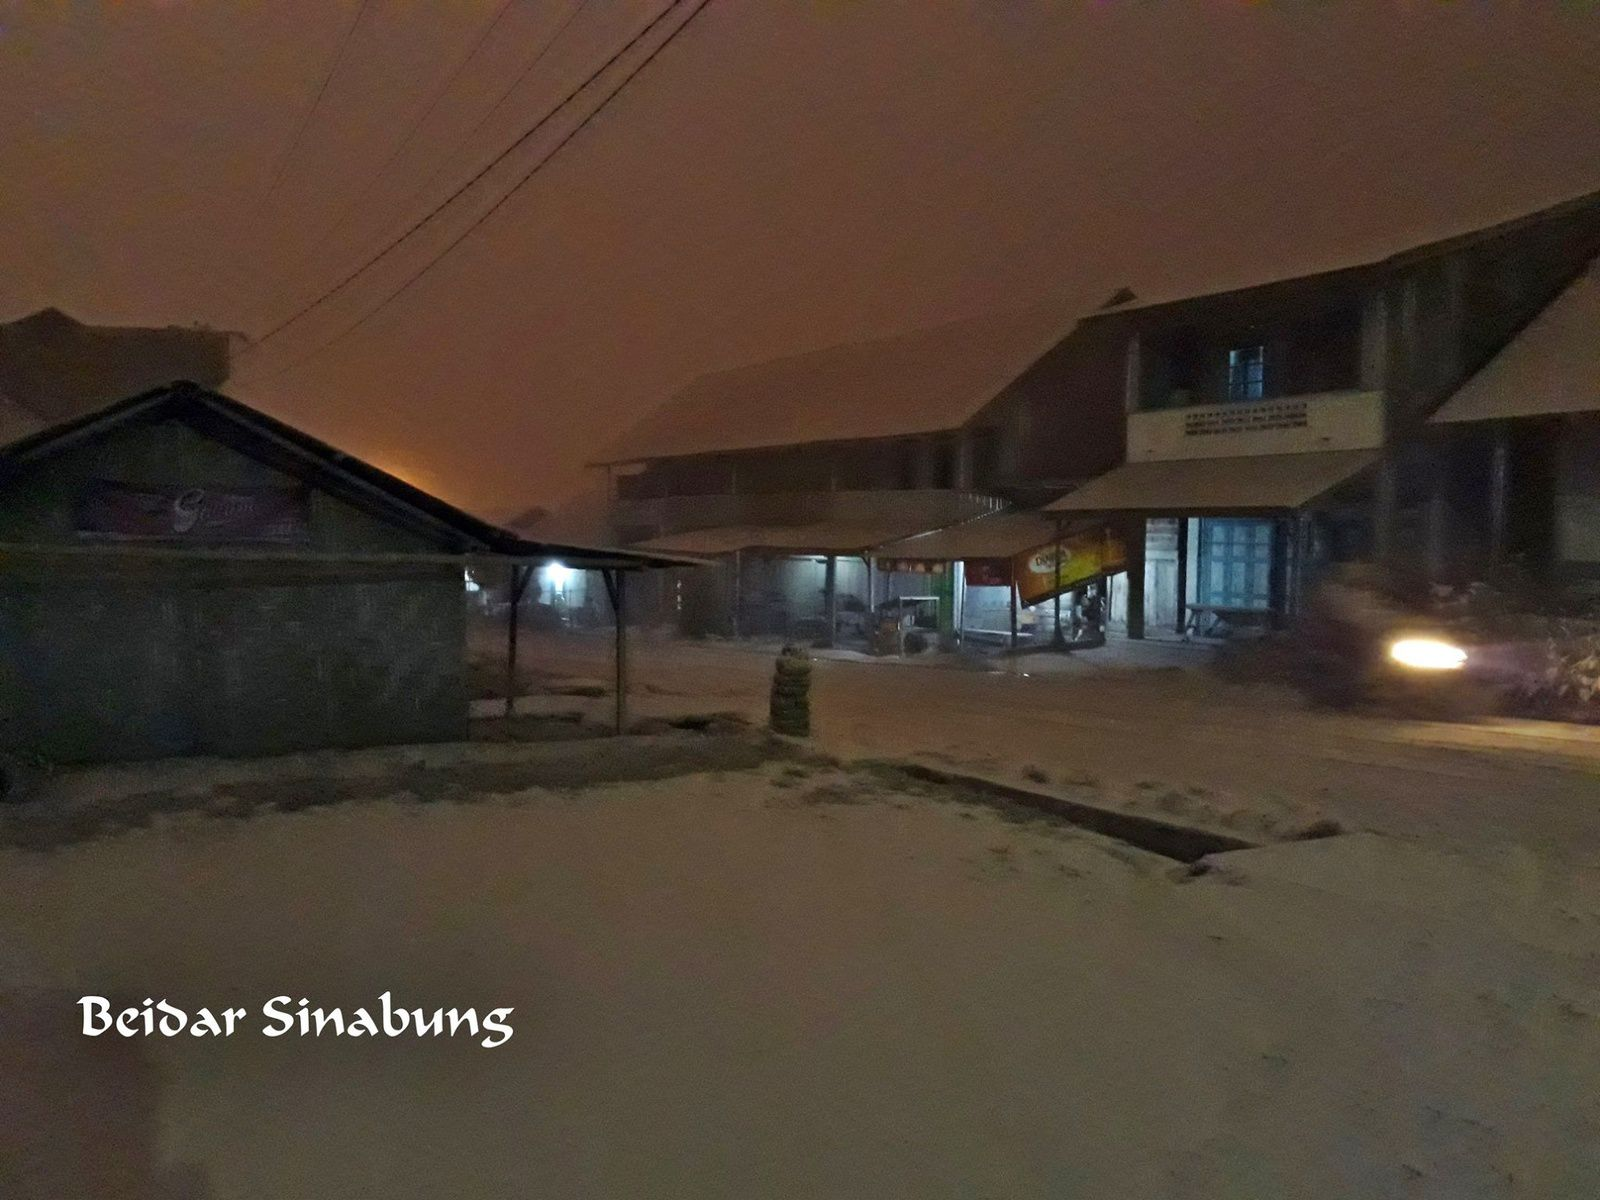 Sinabung - eruption of 19.02.2018  -  ashes of the eruption have invaded the surroundings for two hours - photo Firdaus surbakti / Beidar sinabung